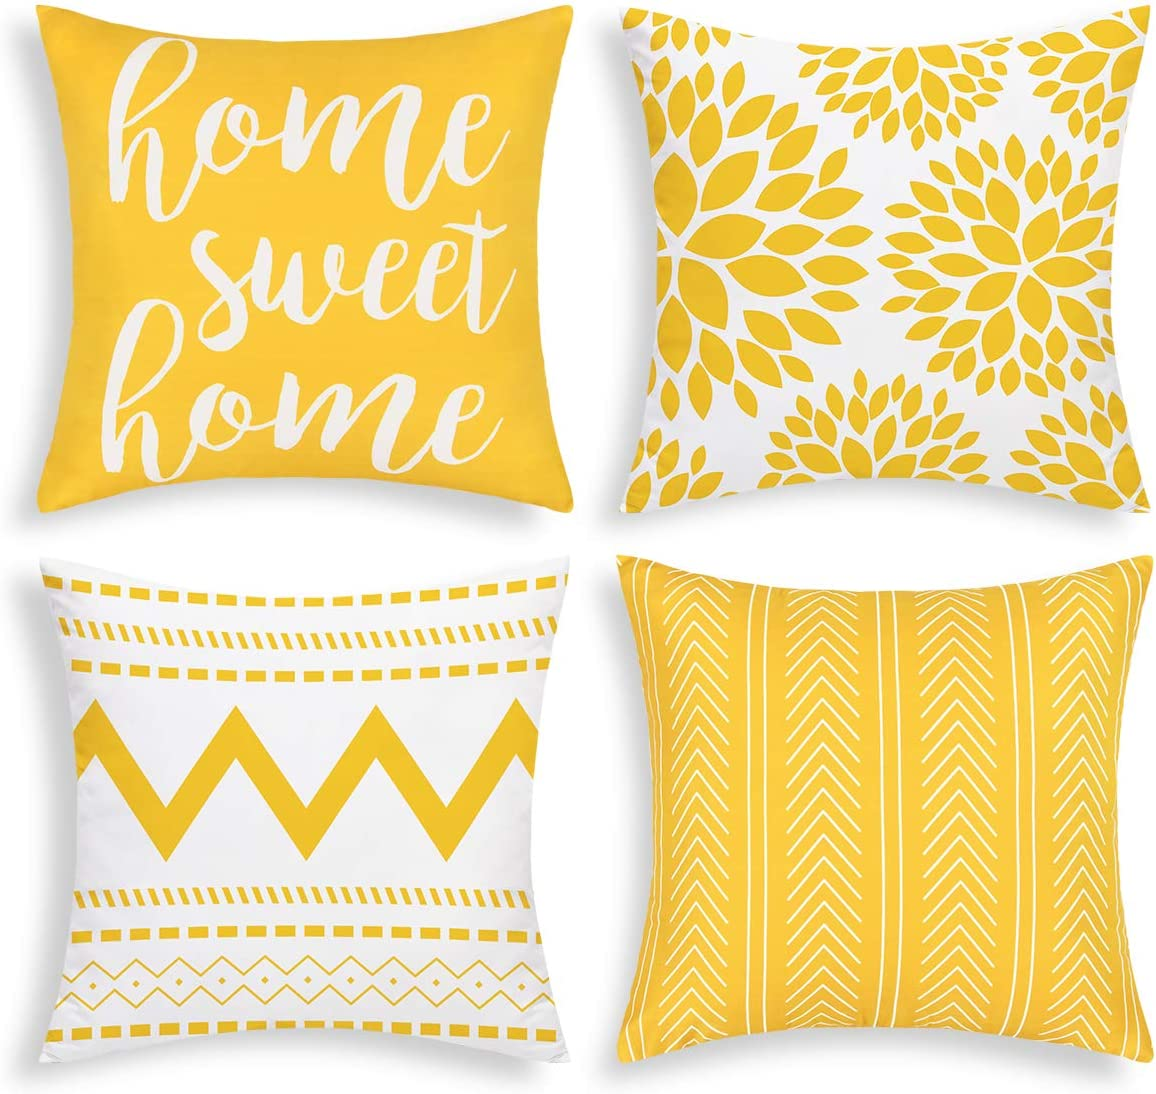 Yastouay Geometric Throw Pillow Covers Set of 4 Modern Decorative Pillowcases Home Sweet Home Pillow Covers Outdoor Cushion Covers for Couch Sofa Bedroom(Yellow, 18 x 18 Inch)